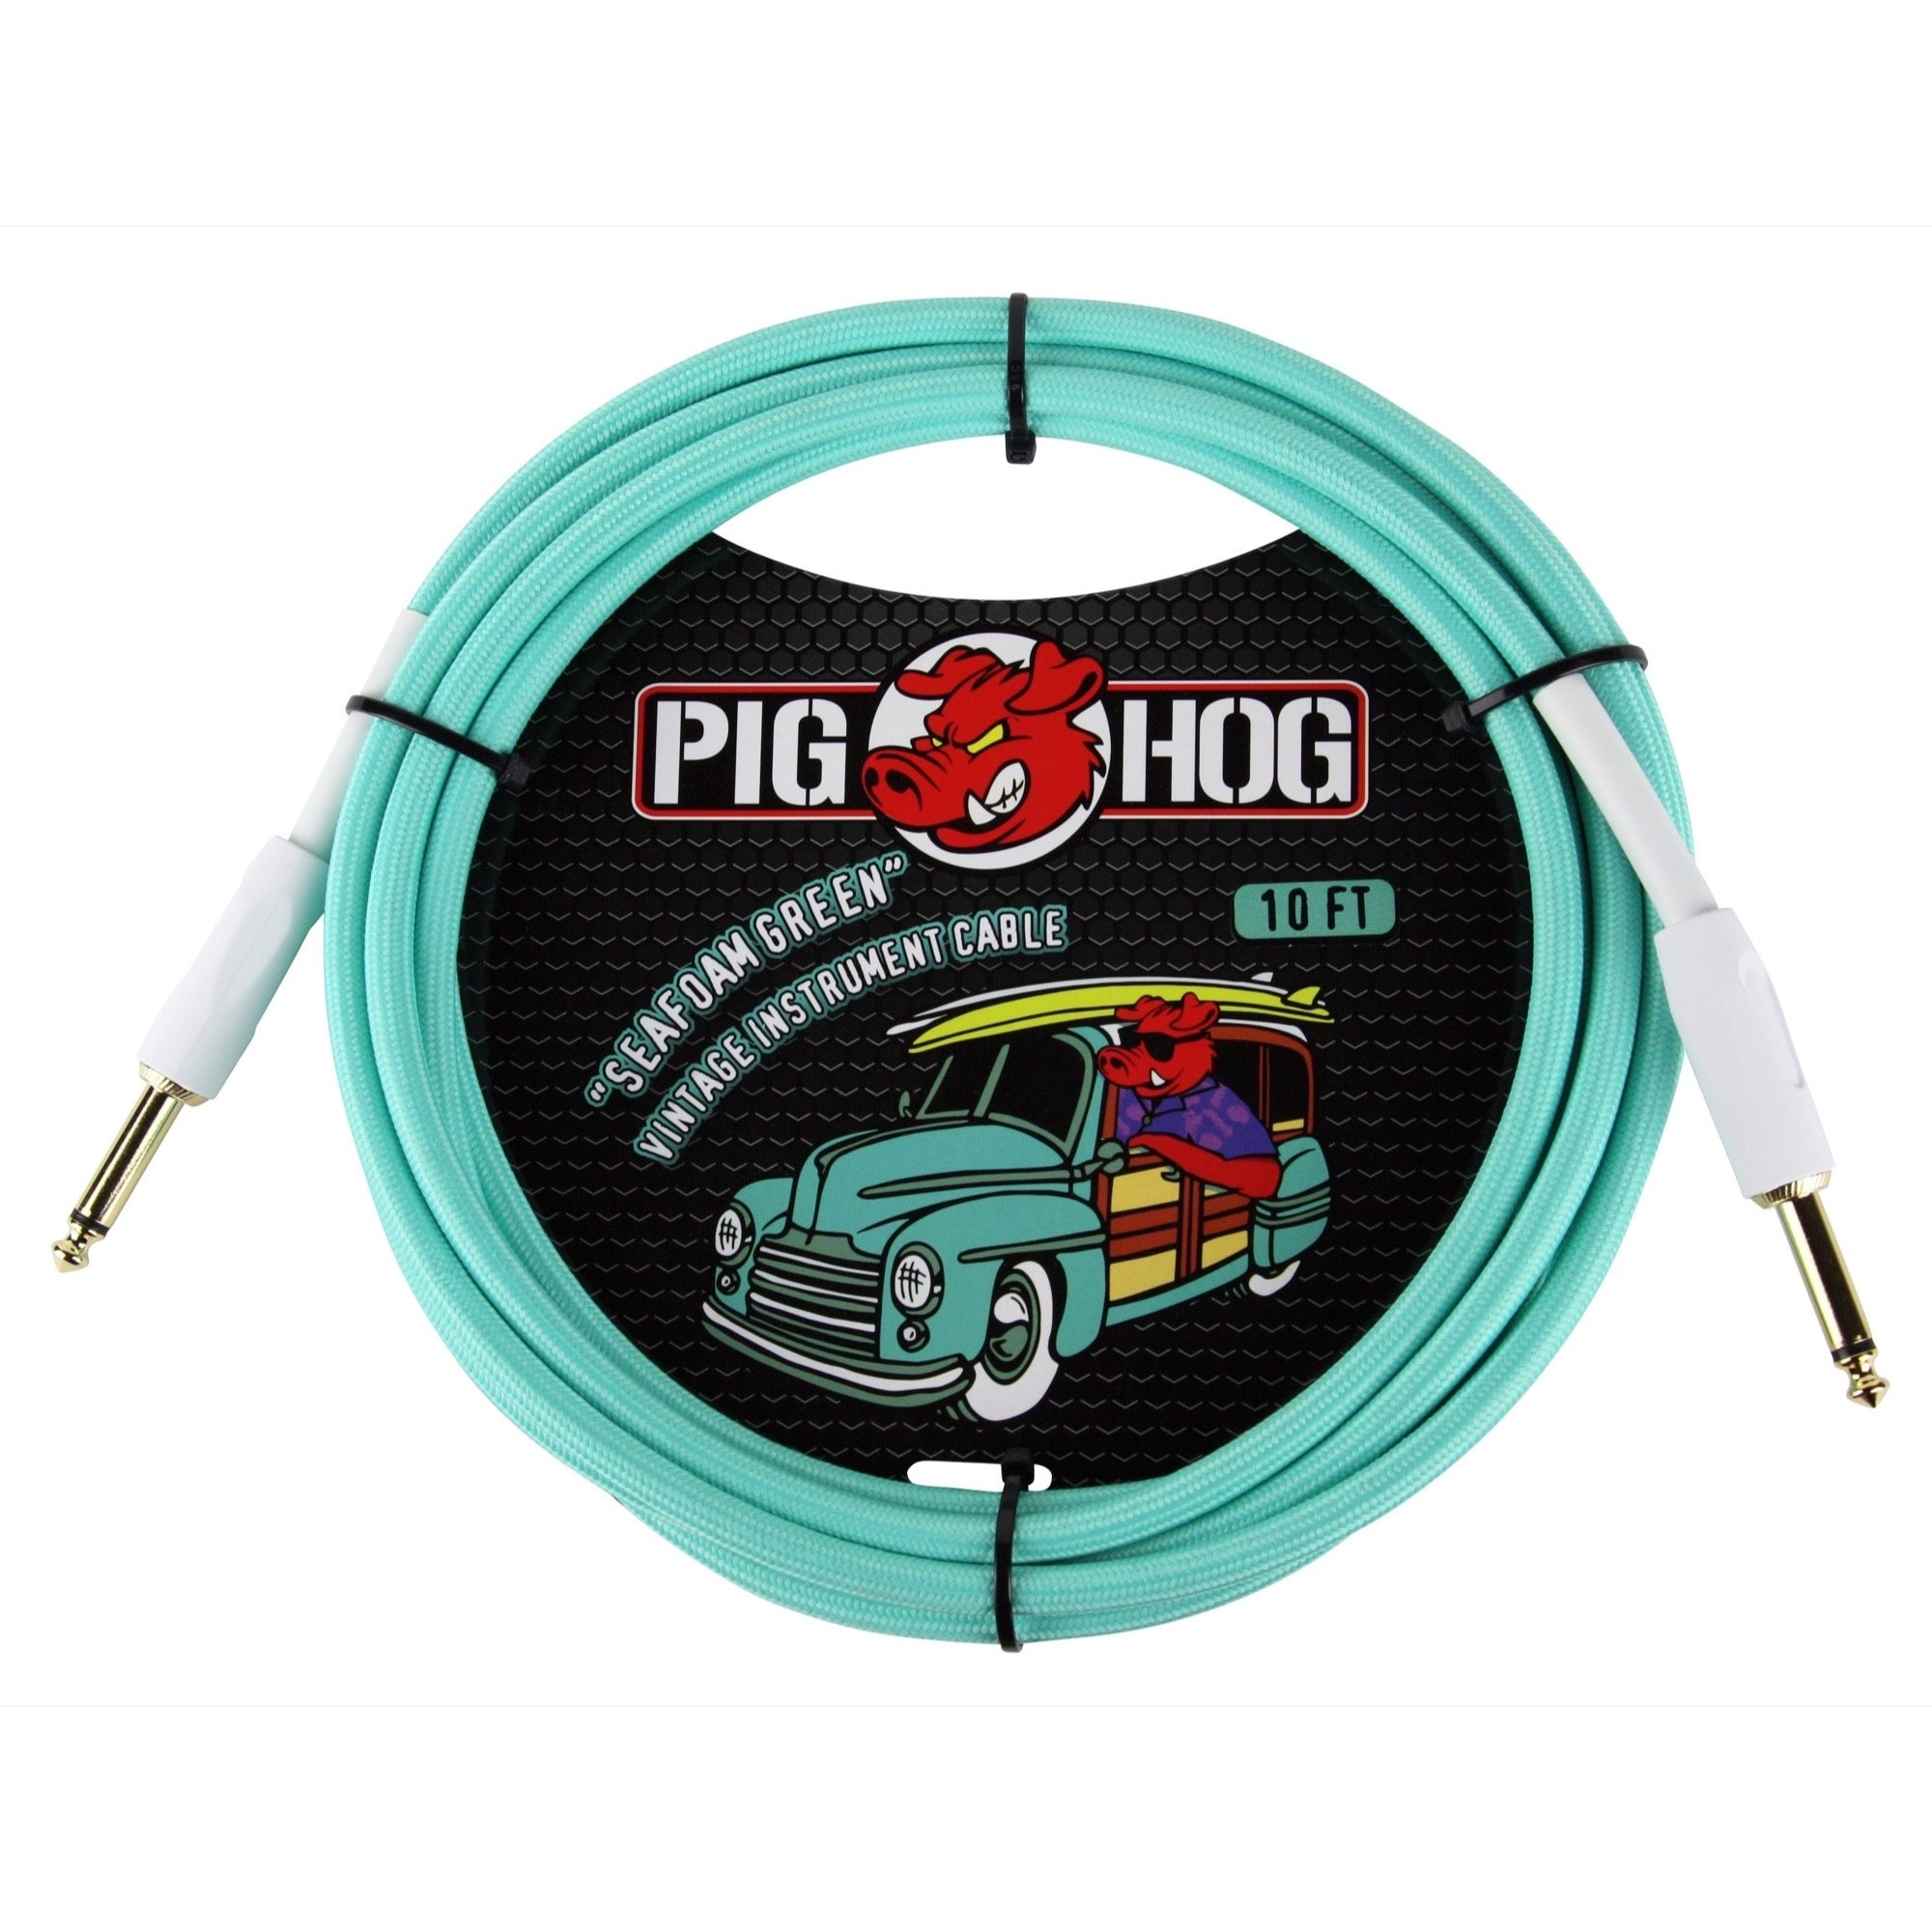 Pig Hog Vintage Series Instrument Cable, 1/4 Inch Straight to 1/4 Inch Straight, Seafoam Green, 10 Foot